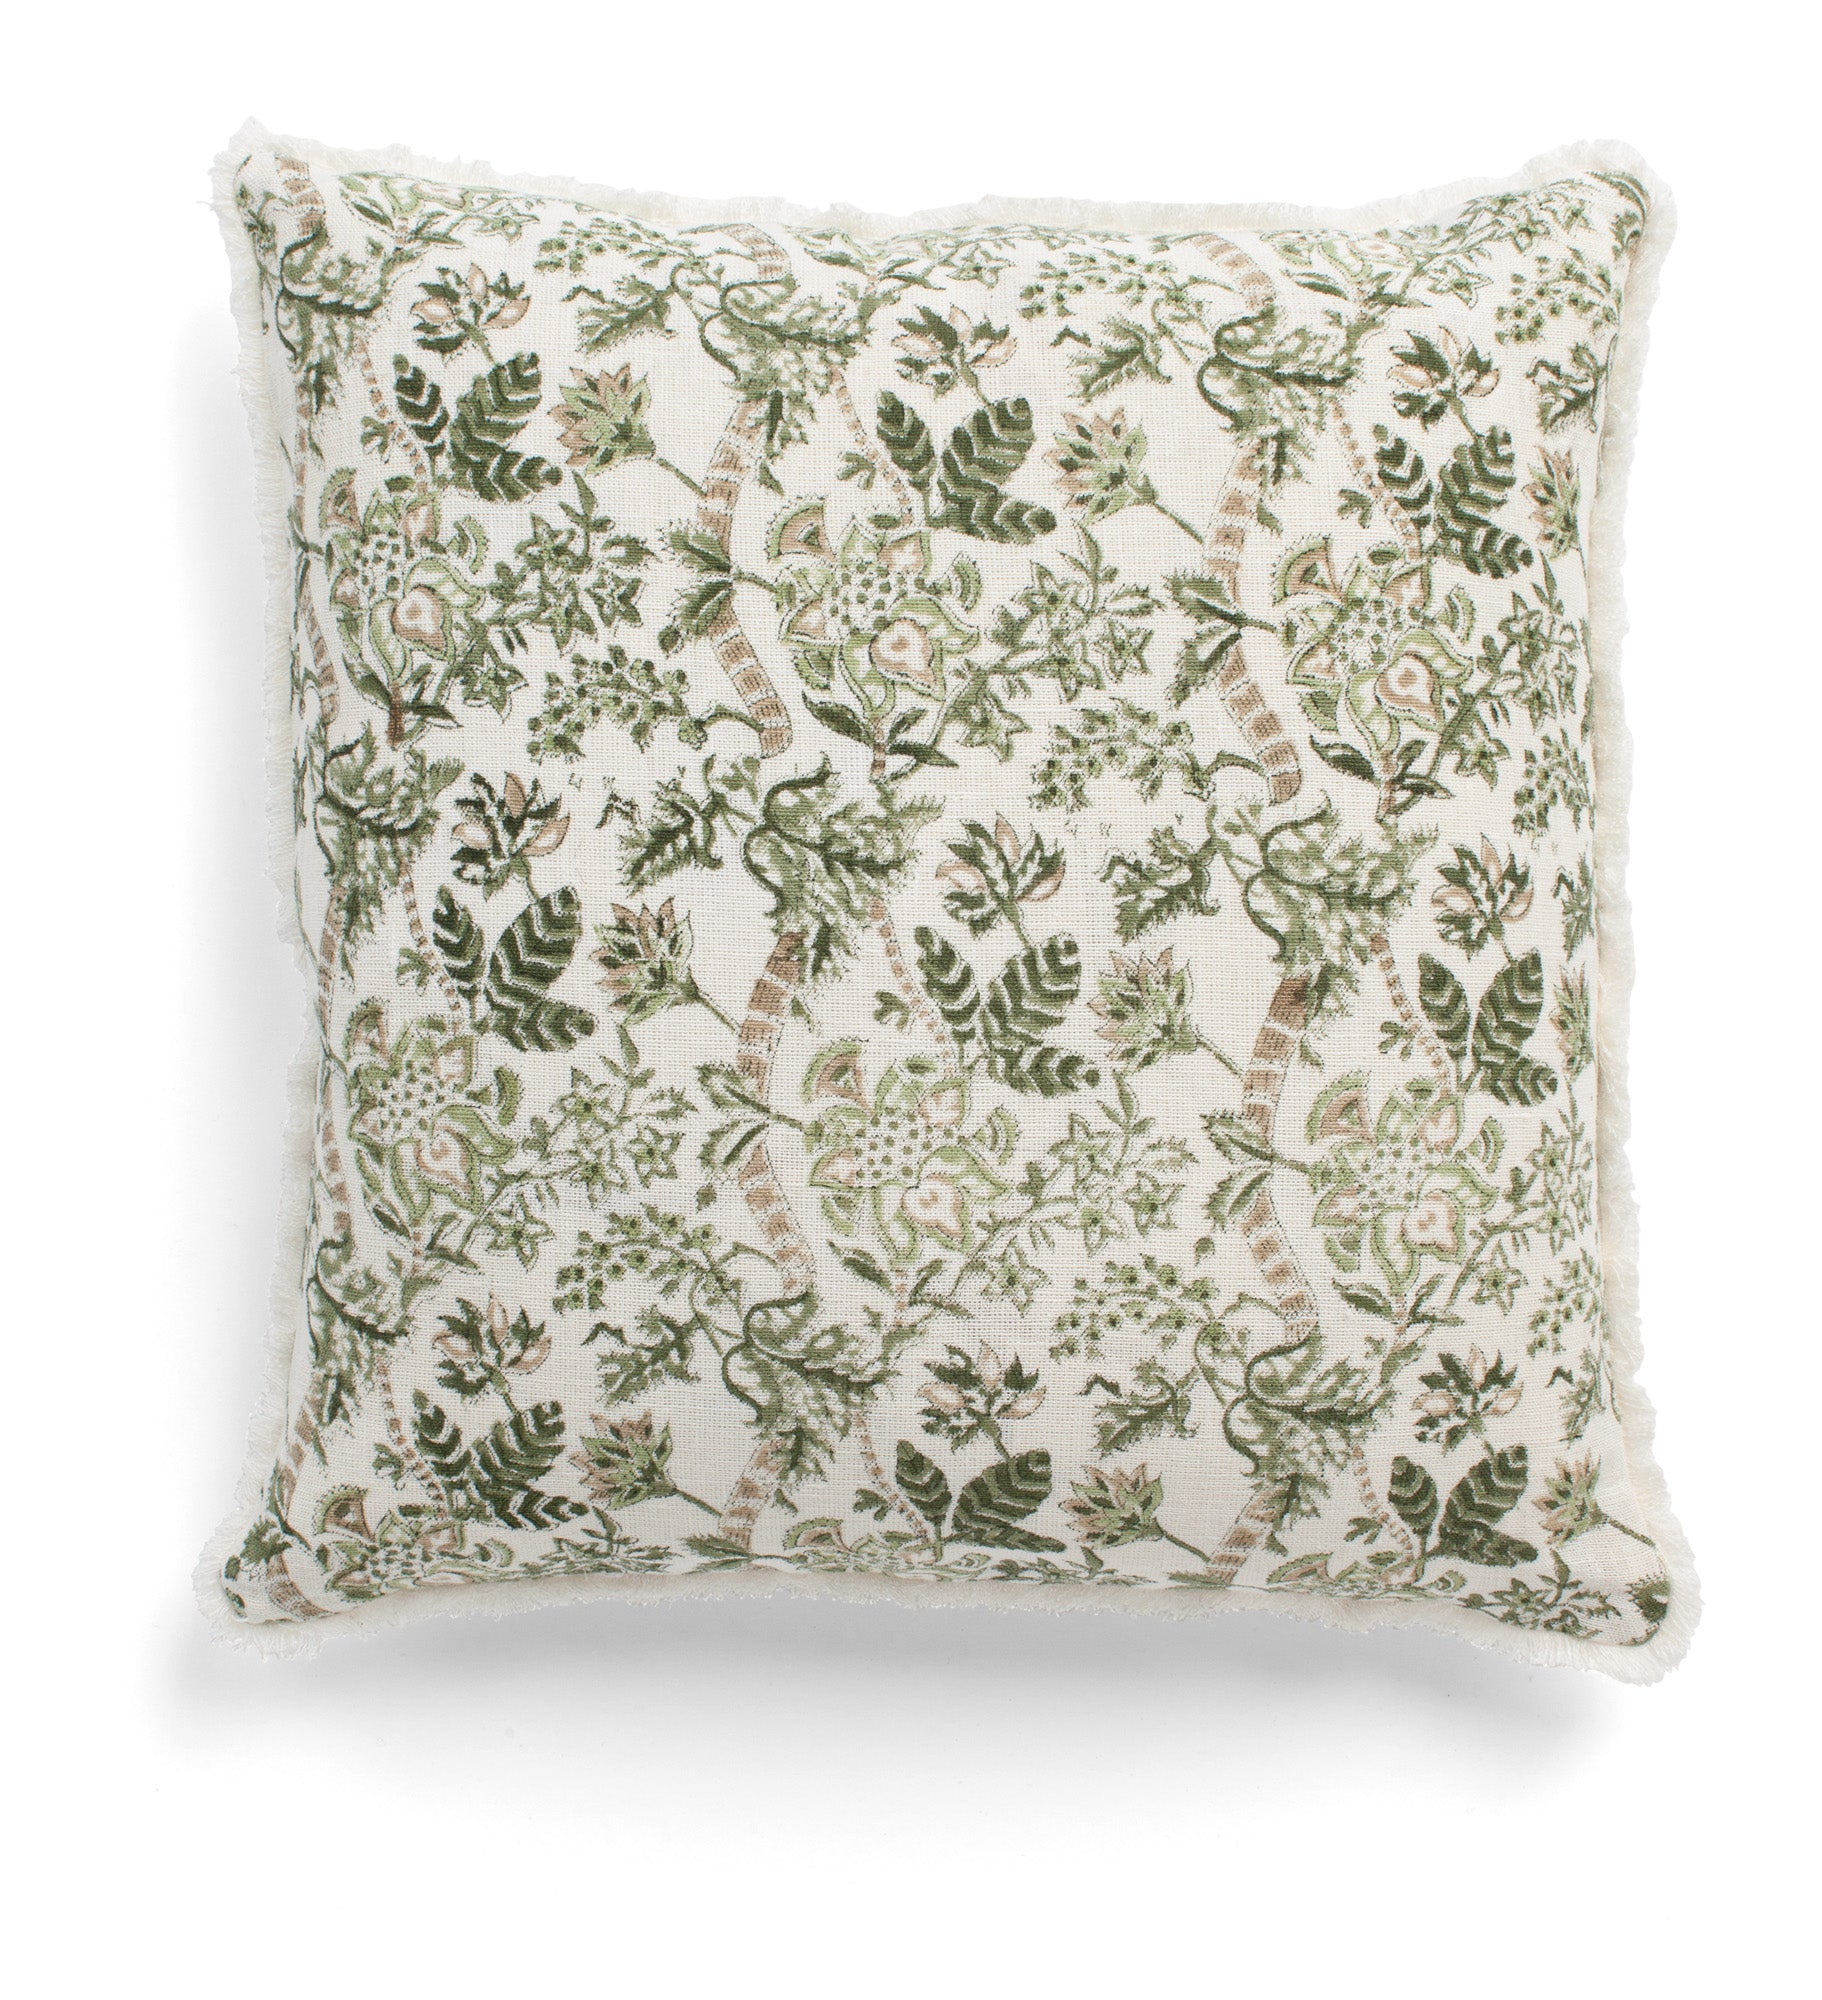 Linen cushion with Floral print in Olive